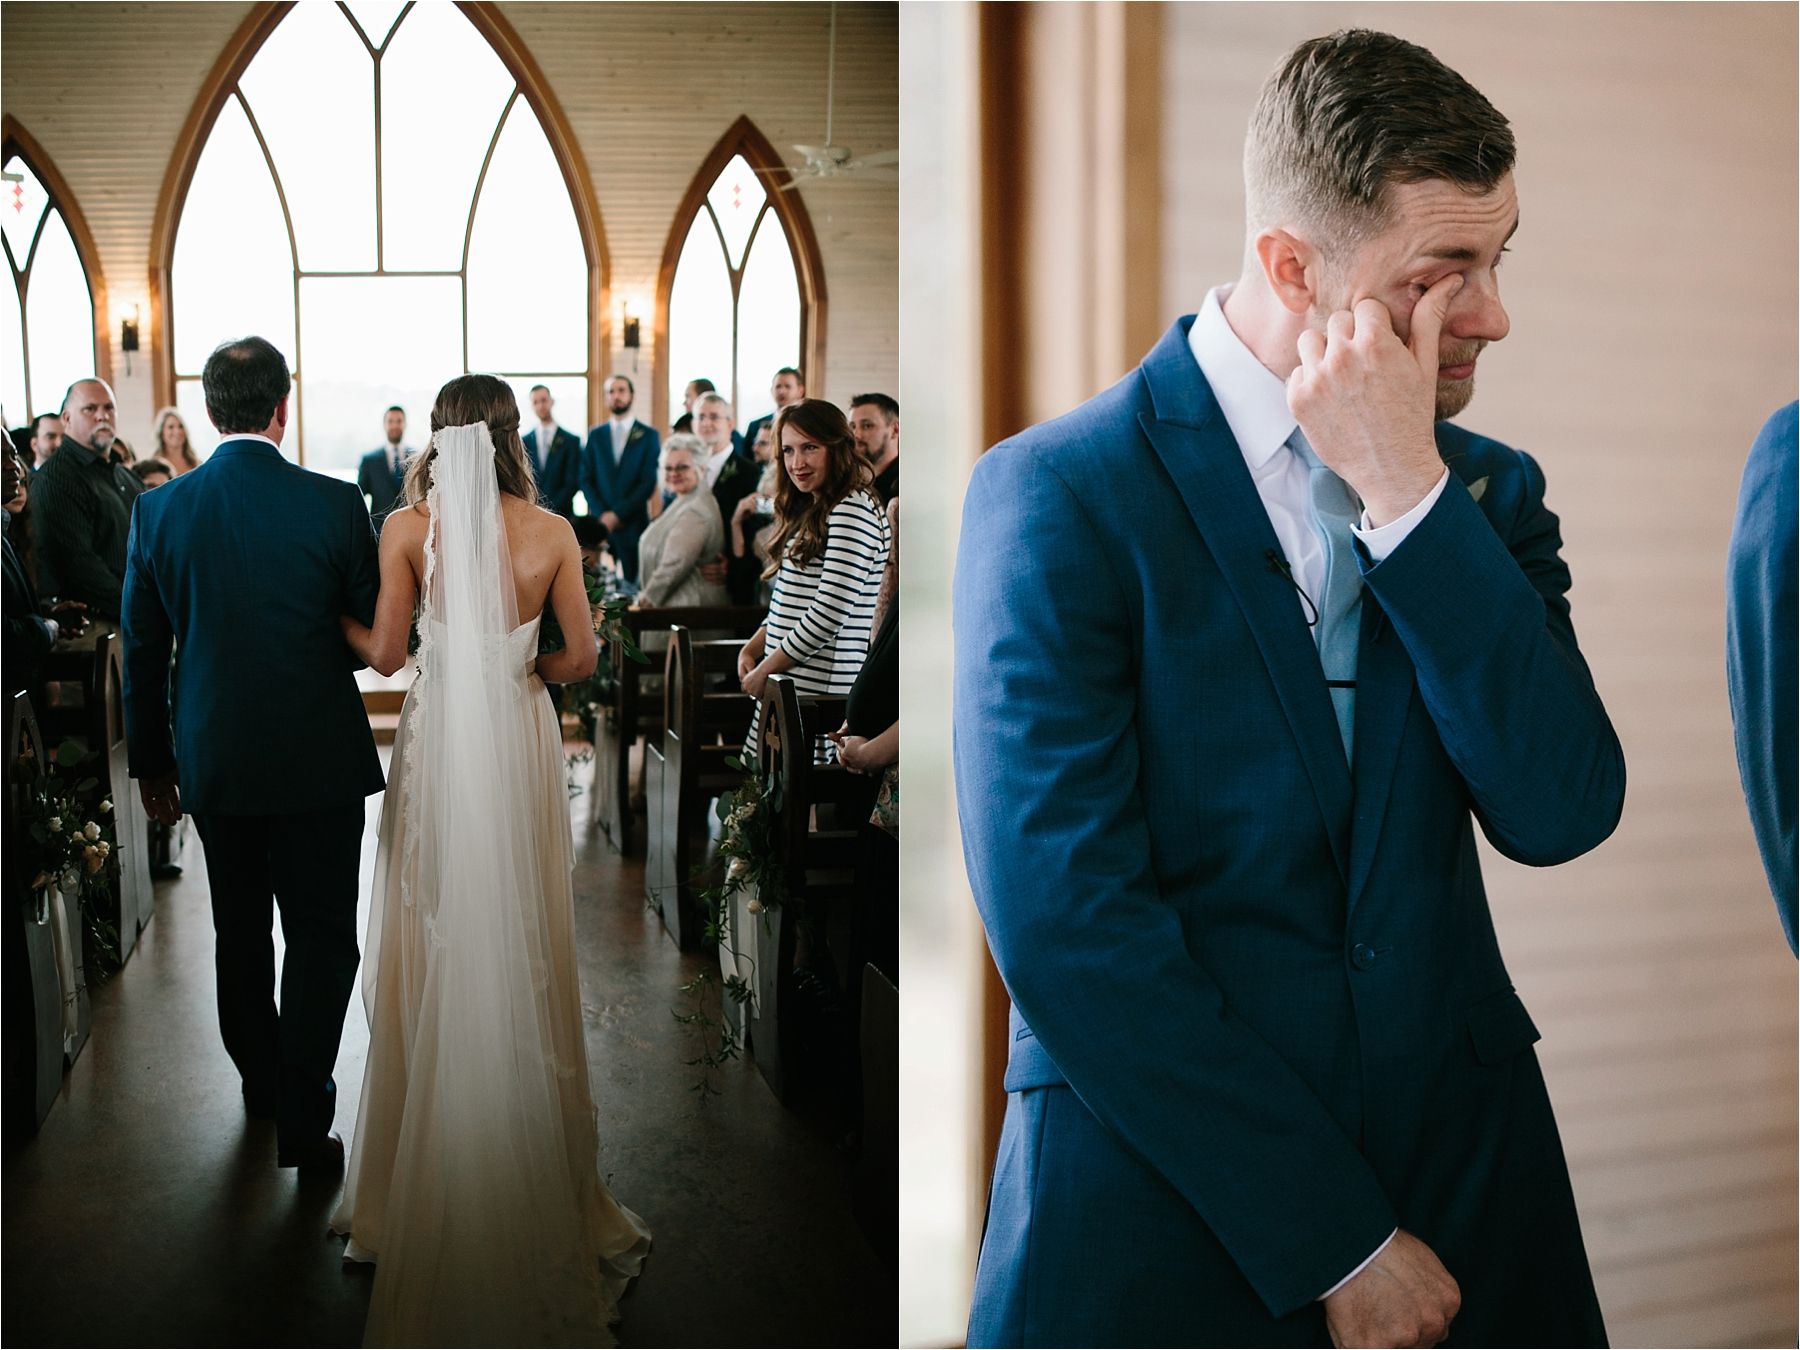 Lauren + Matt __ an intimate, emotional, blush pink, navy blue, and greenery toned wedding accents at the Brooks at Weatherford by North Texas Wedding Photographer Rachel Meagan Photography114